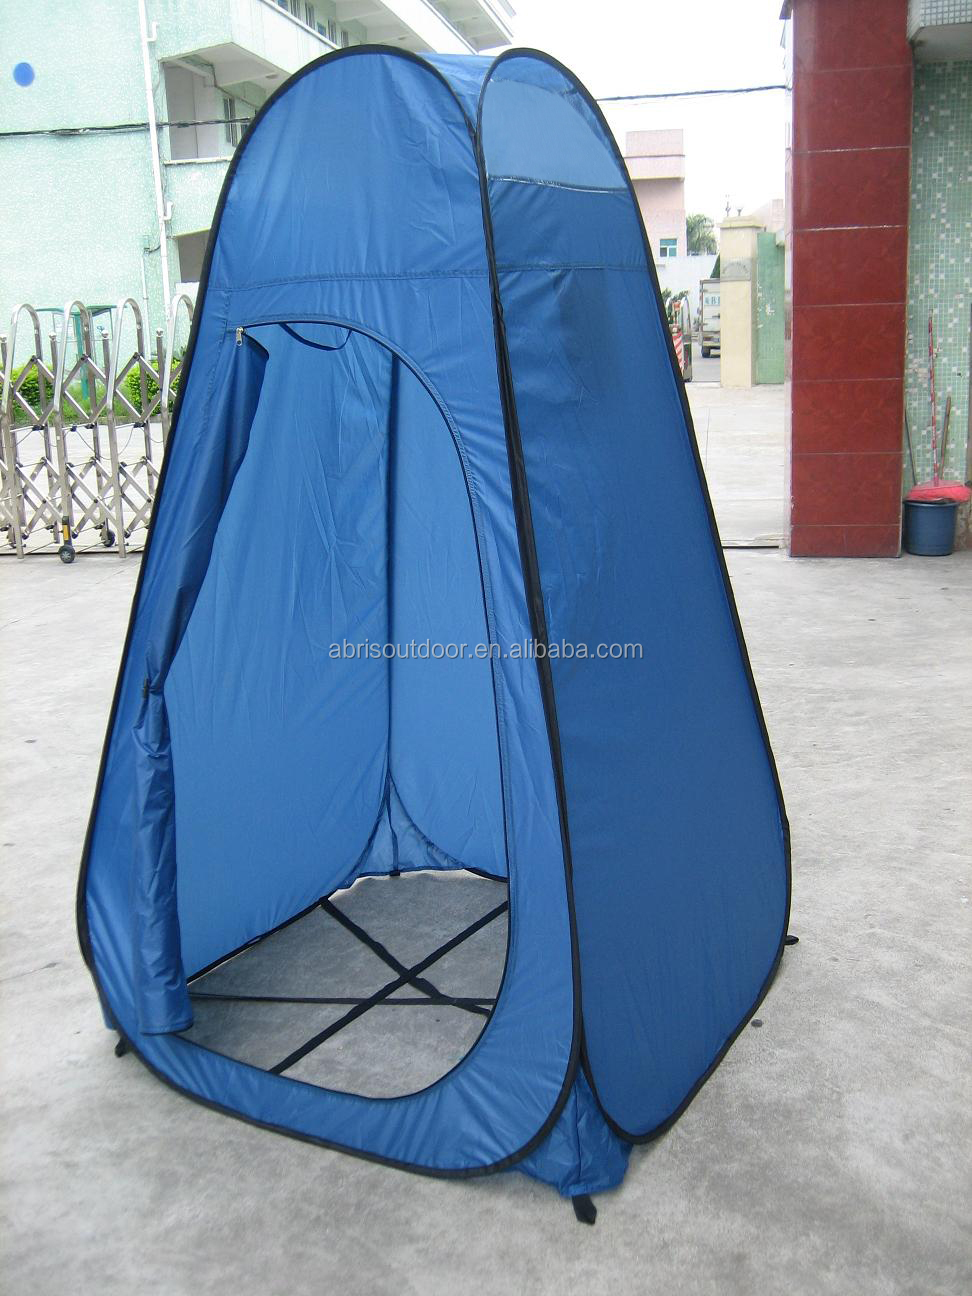 Privacy change 2 second pop up shower tent for 1person & Privacy Change 2 Second Pop Up Shower Tent For 1person - Buy Pop ...